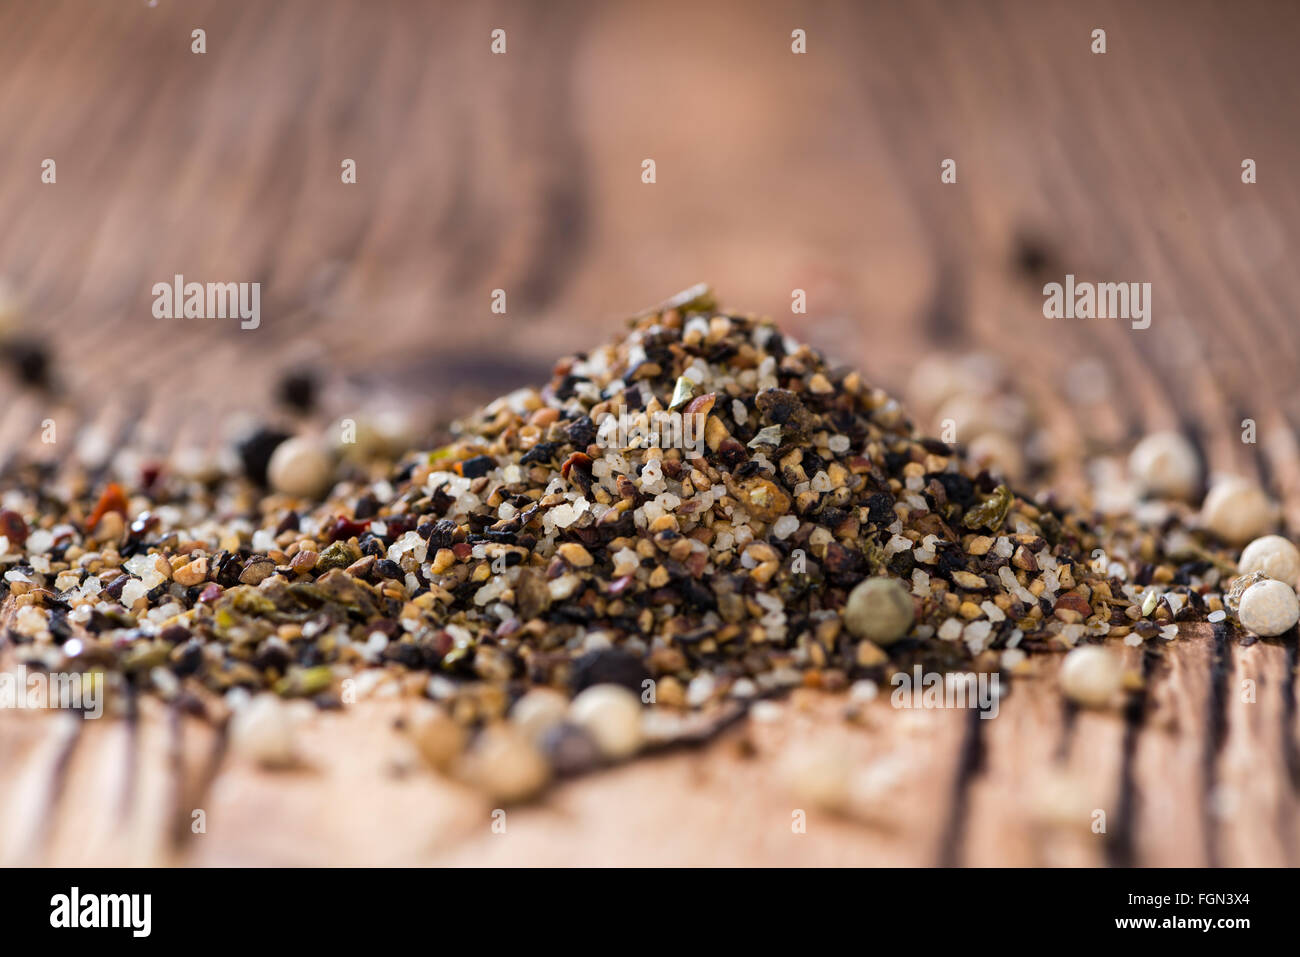 Portion of milled Peppercorns as detailed close-up shot - Stock Image